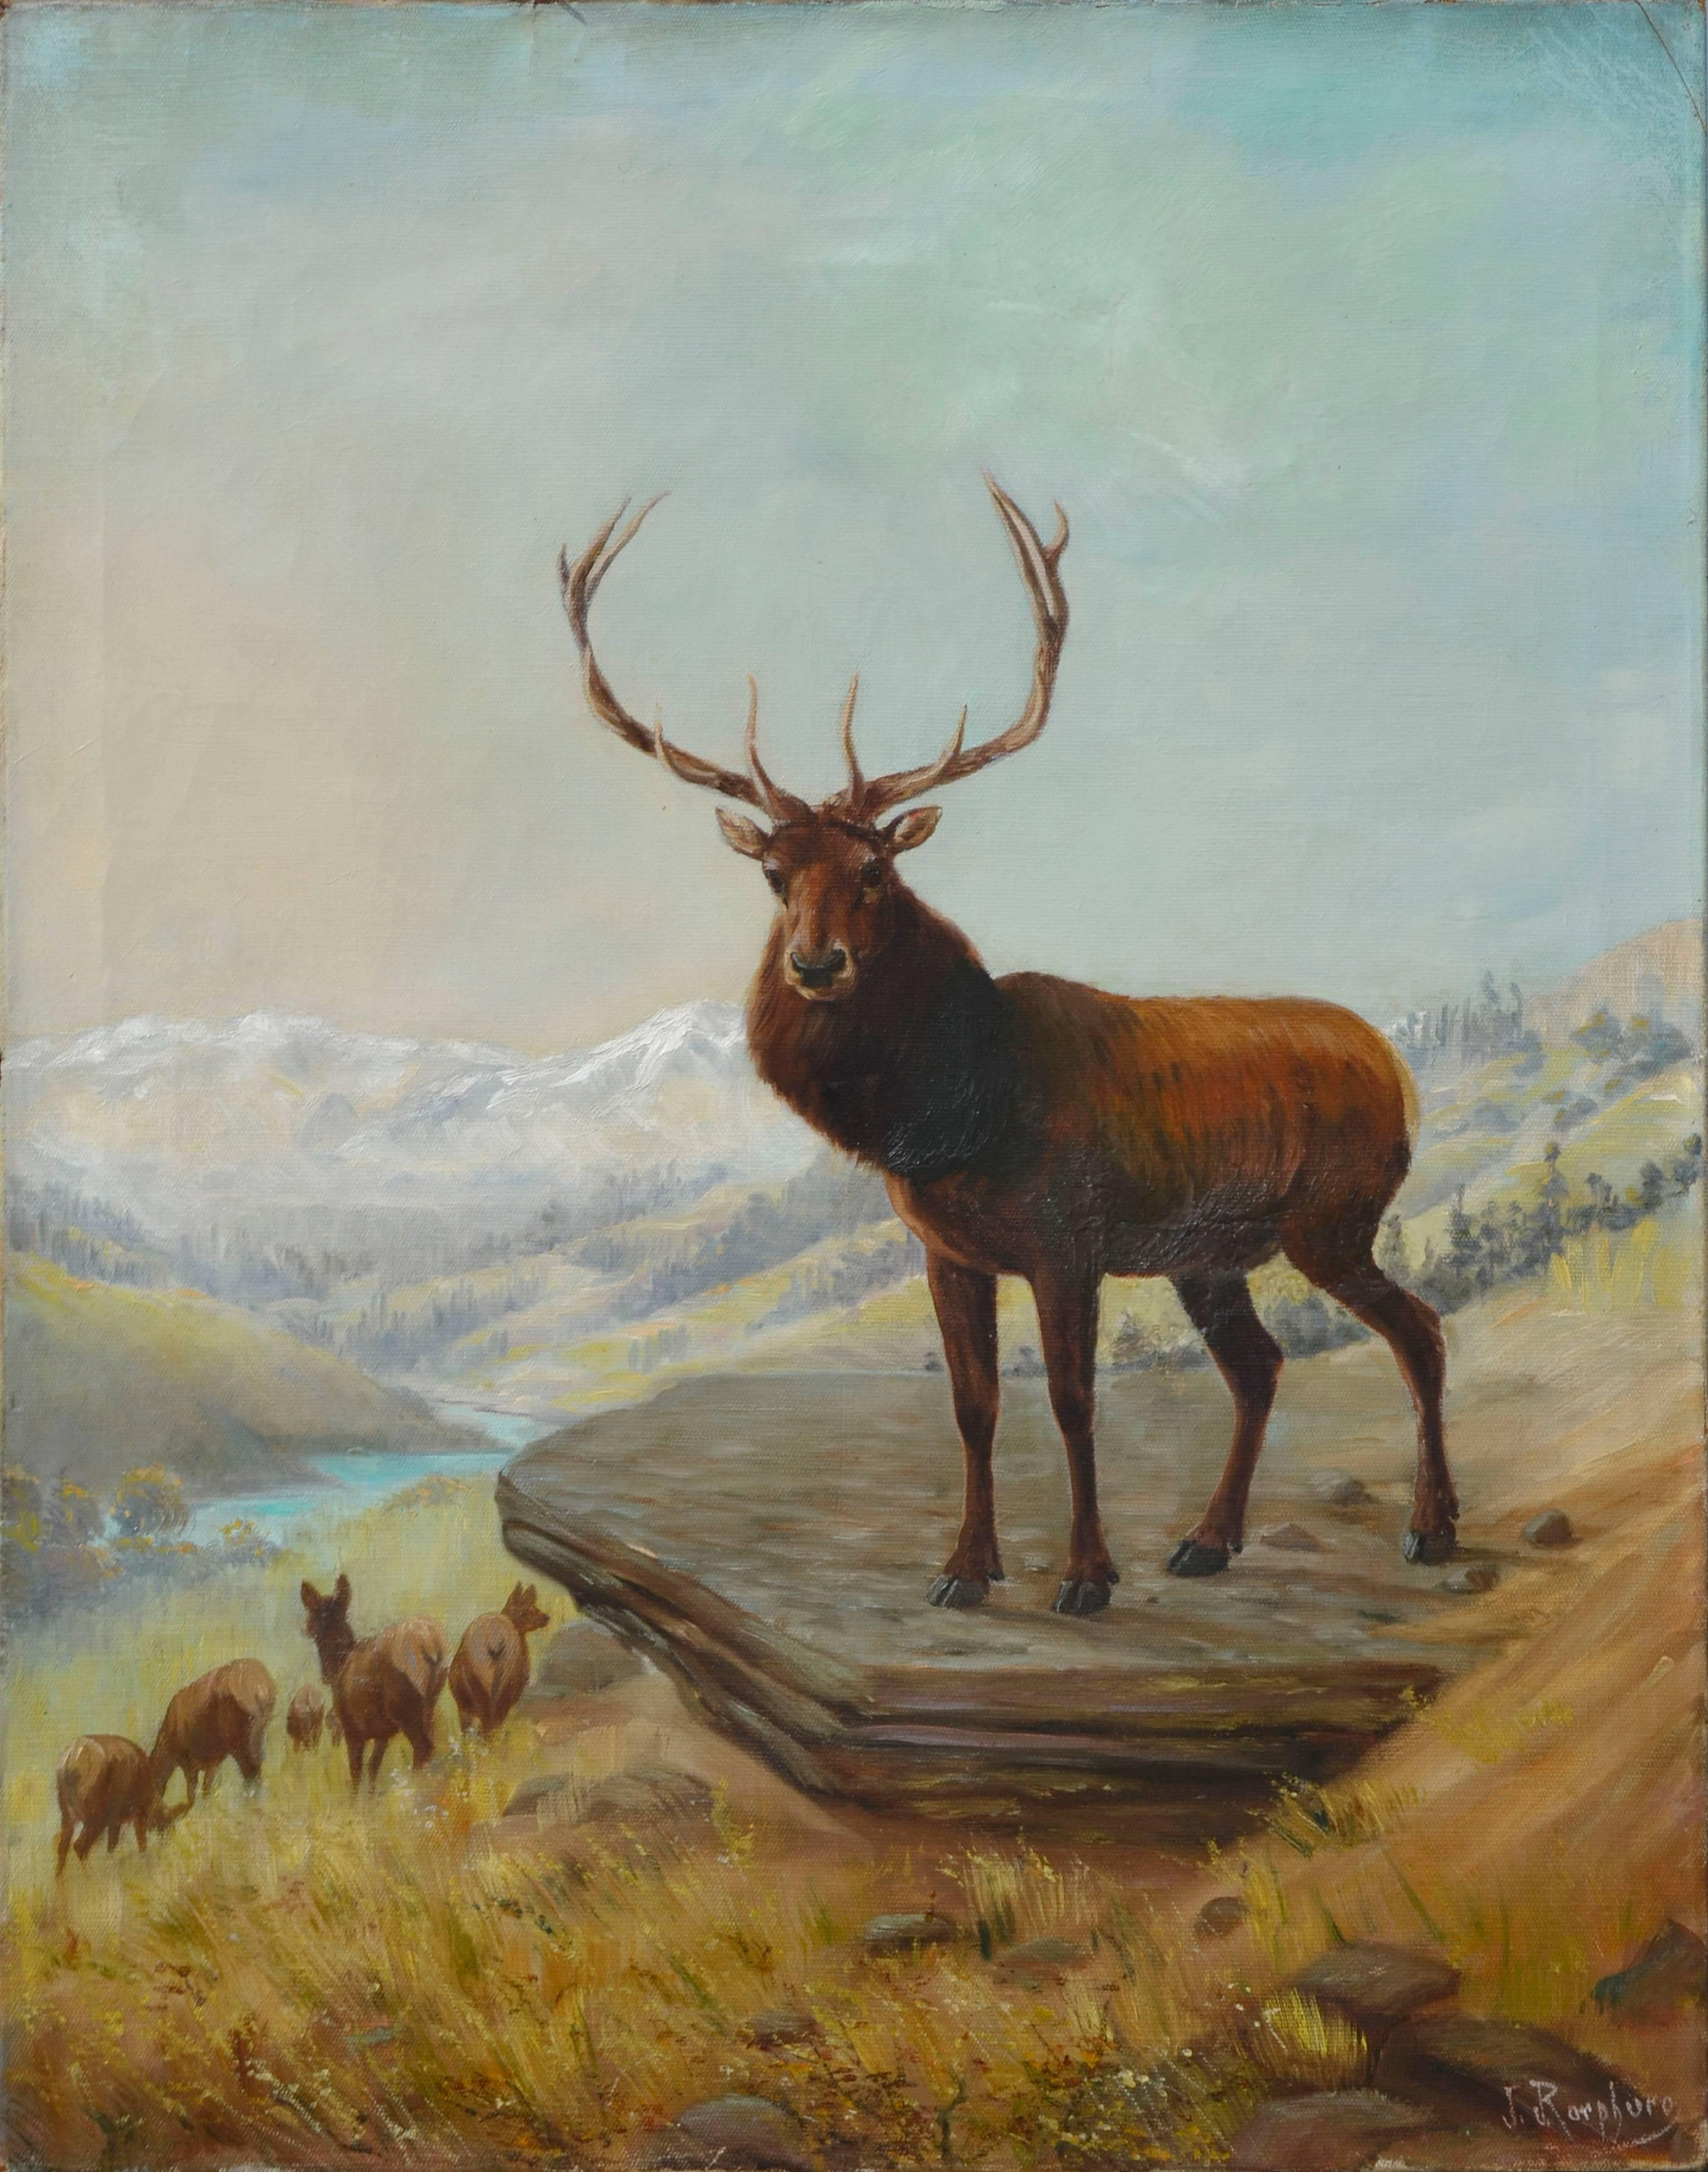 Stag in the Rockies, Mountain Landscape